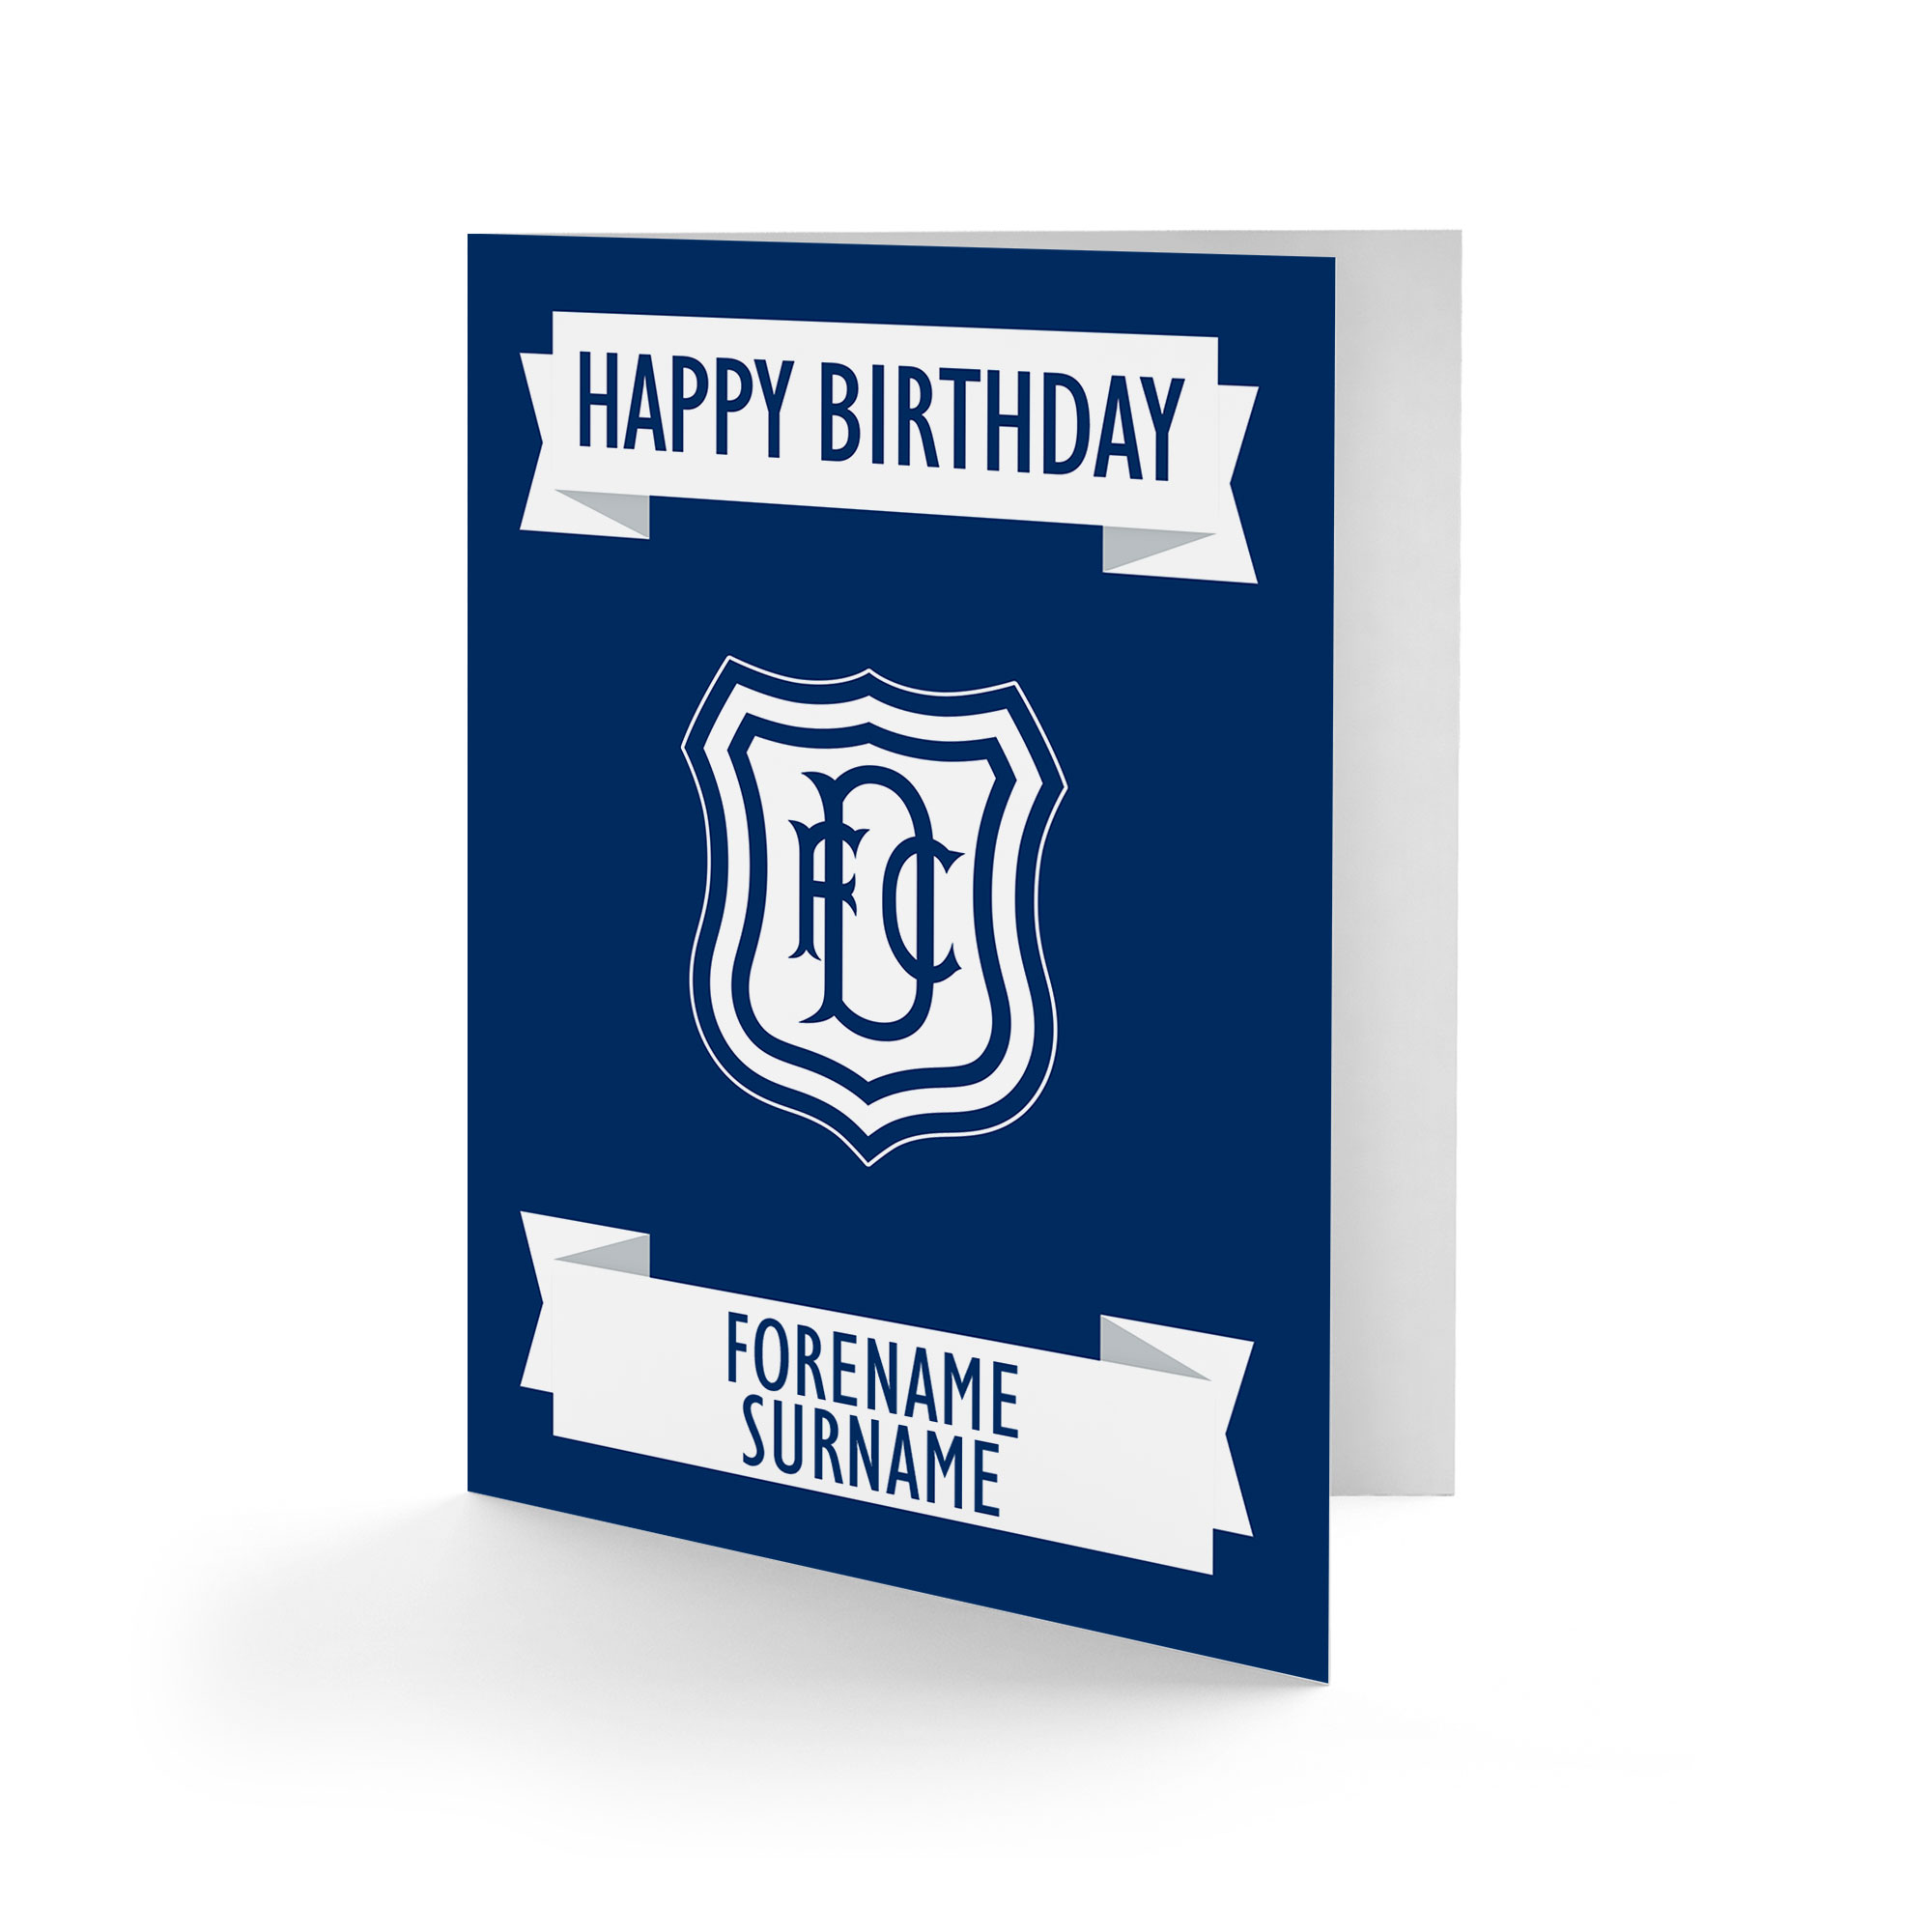 Dundee FC Crest Birthday Card